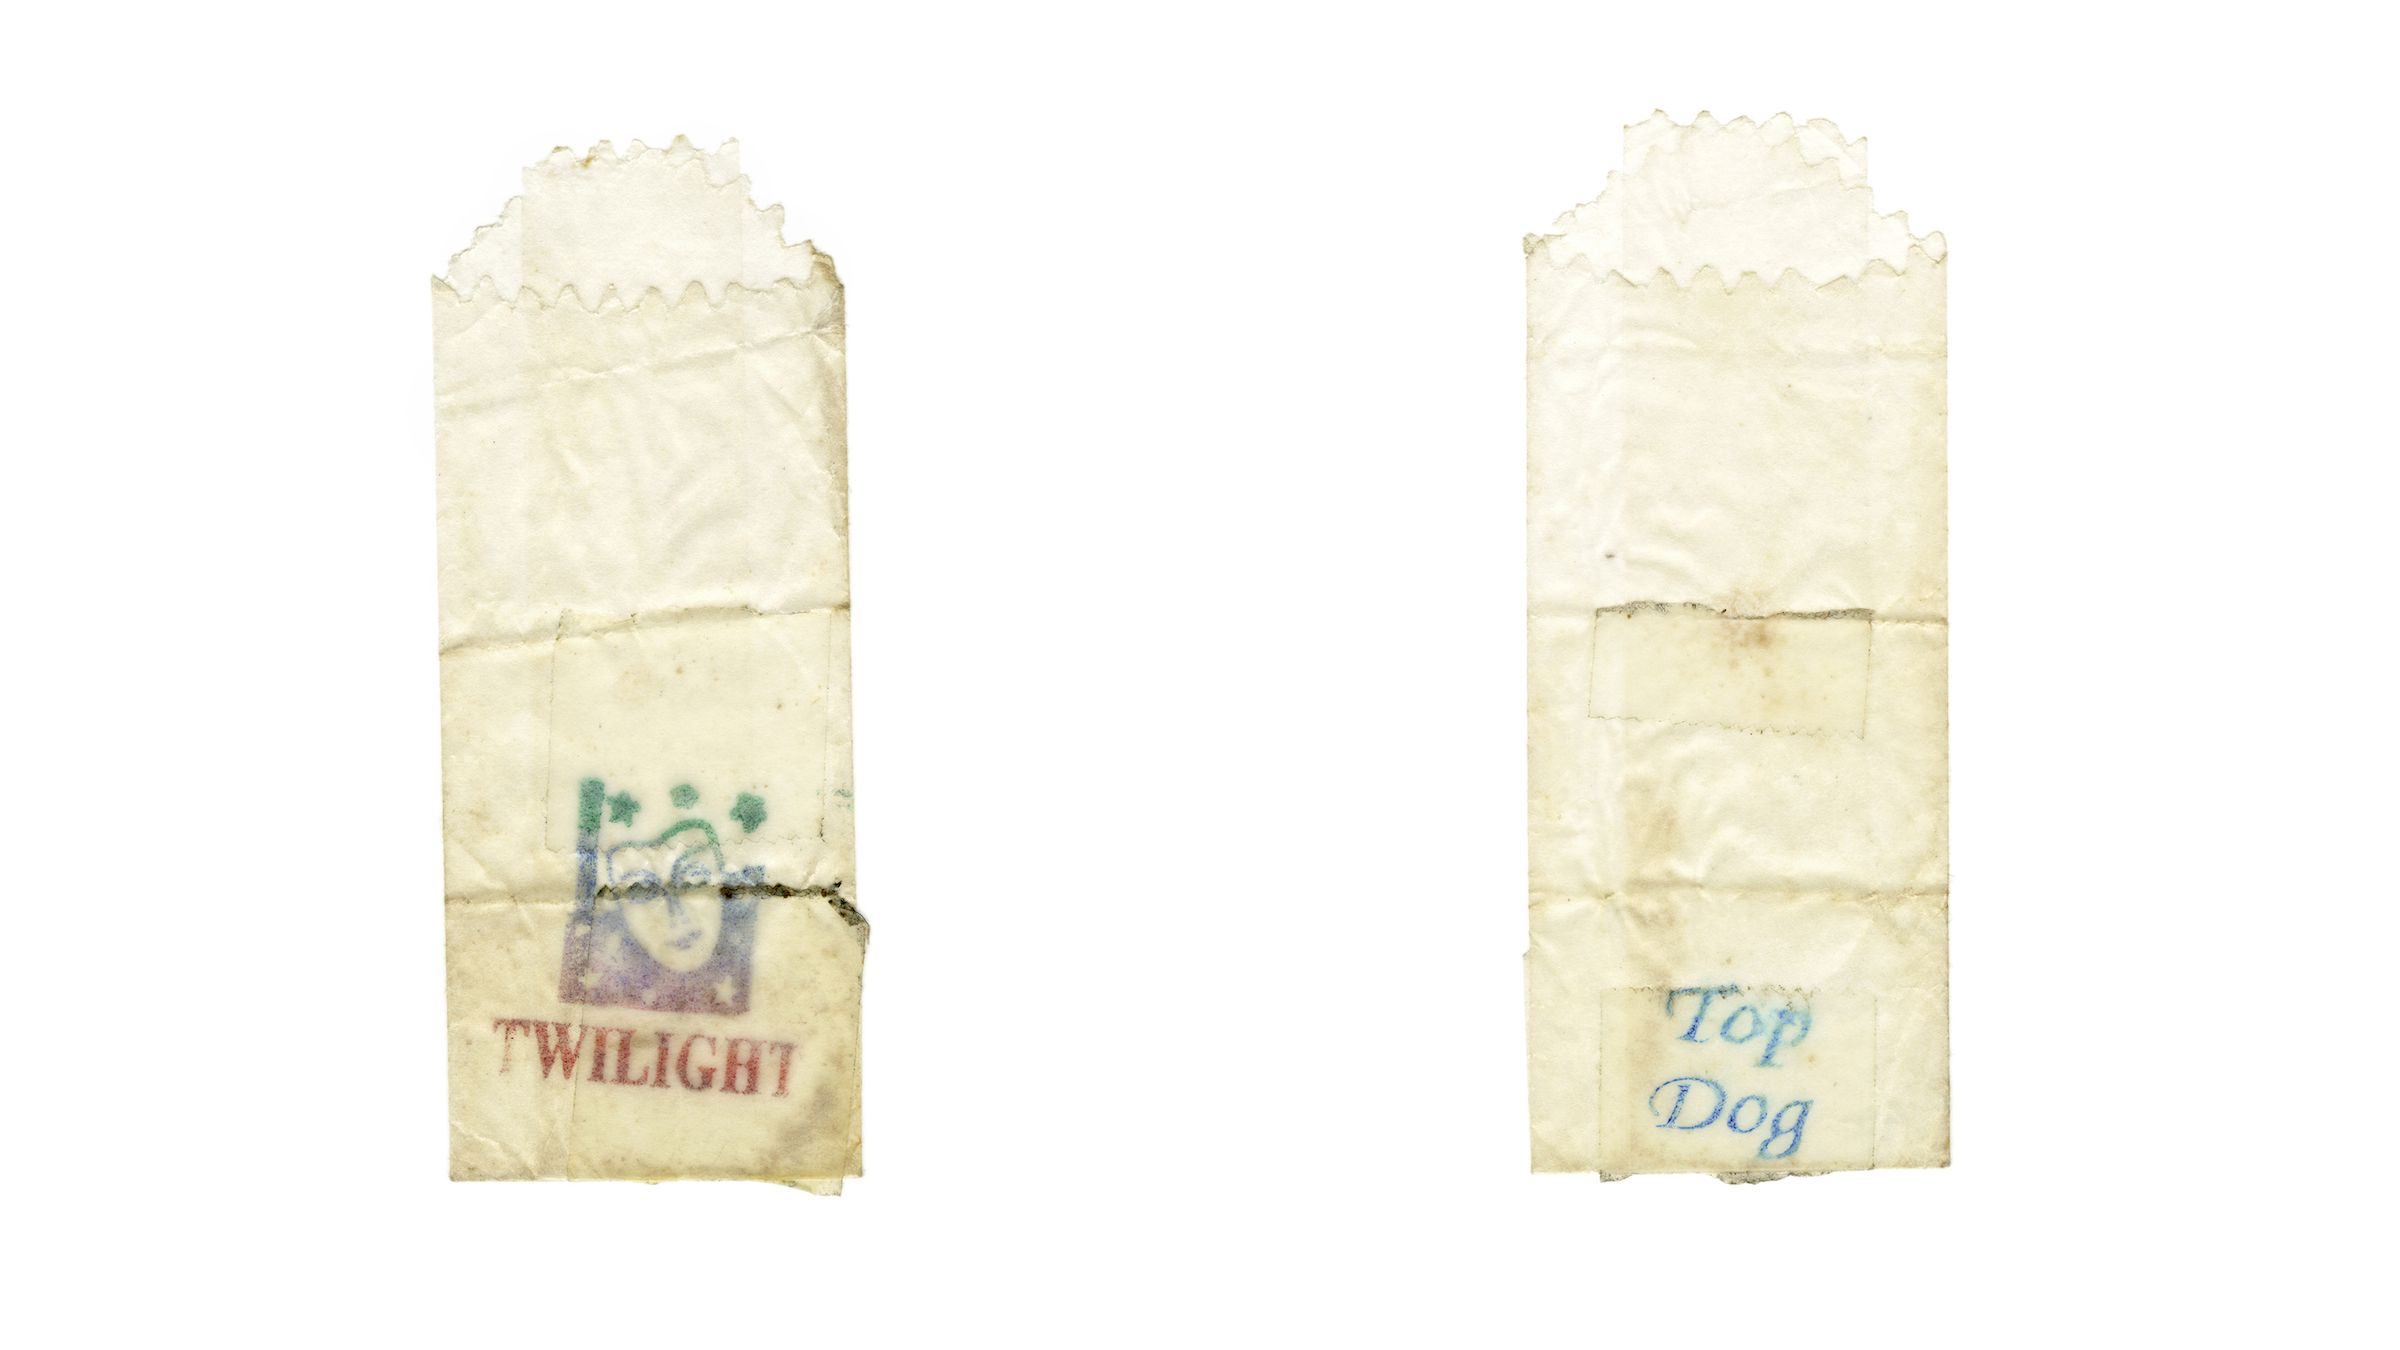 Two heroin baggies branded under the street names Twilight and Top Dog